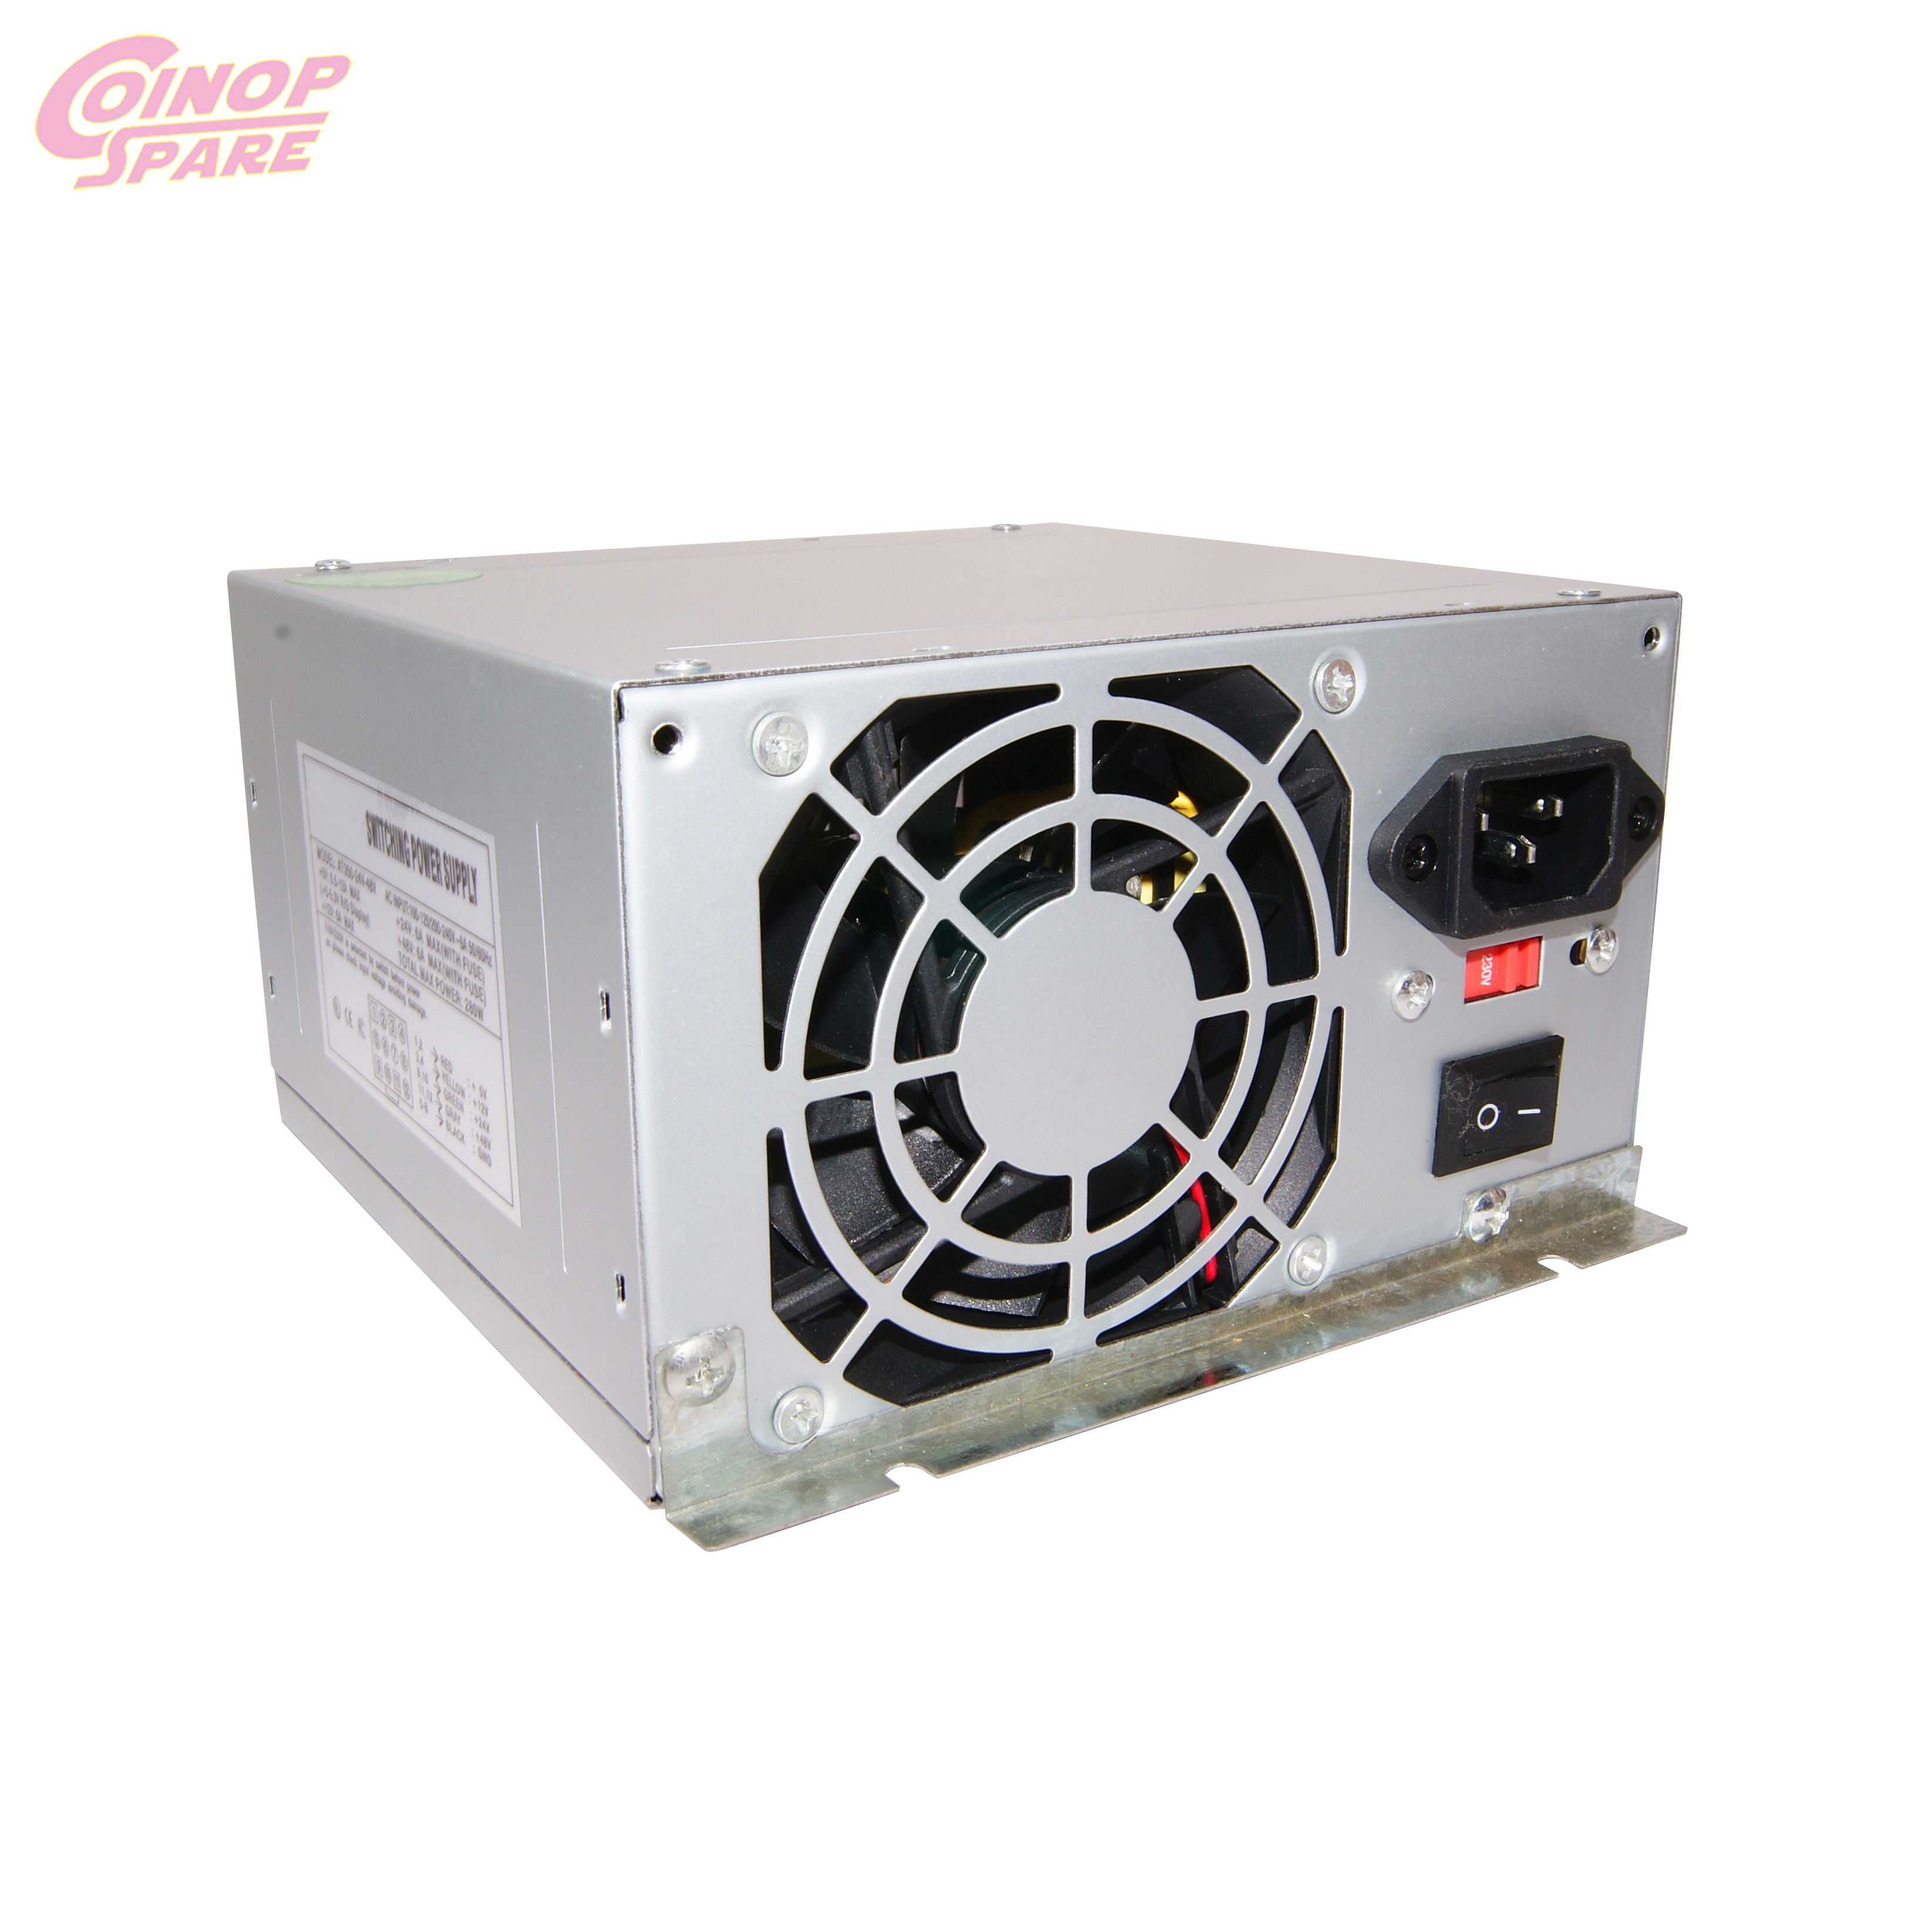 48V 6A Uninterruptible Adjustable Computer Power Supply